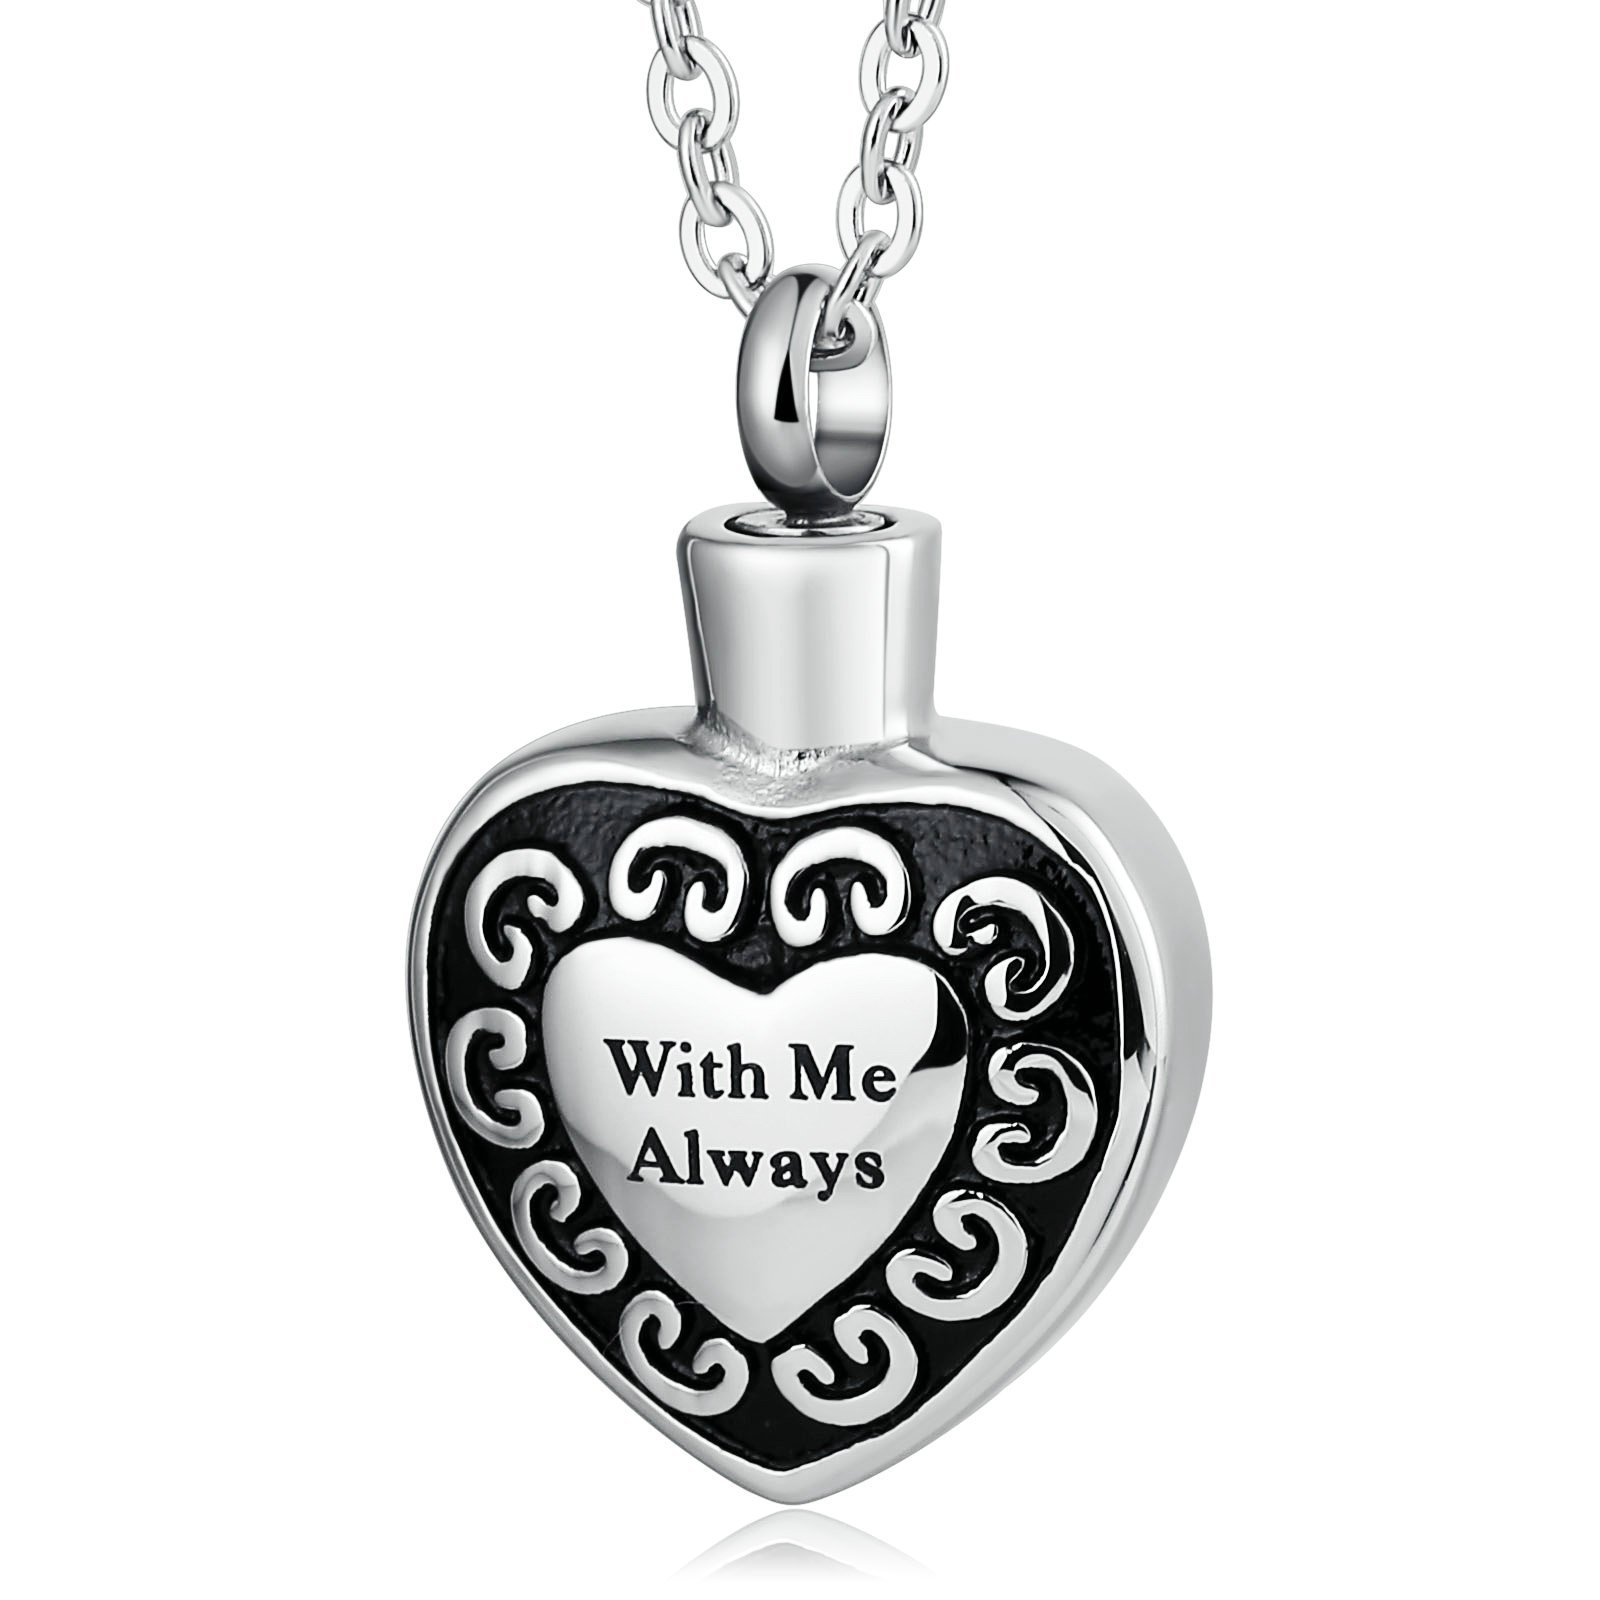 AMDXD Unisex Stainless Steel Ashes Pendant With Me Alwalys Heart Necklaces Silver Memorial Necklace